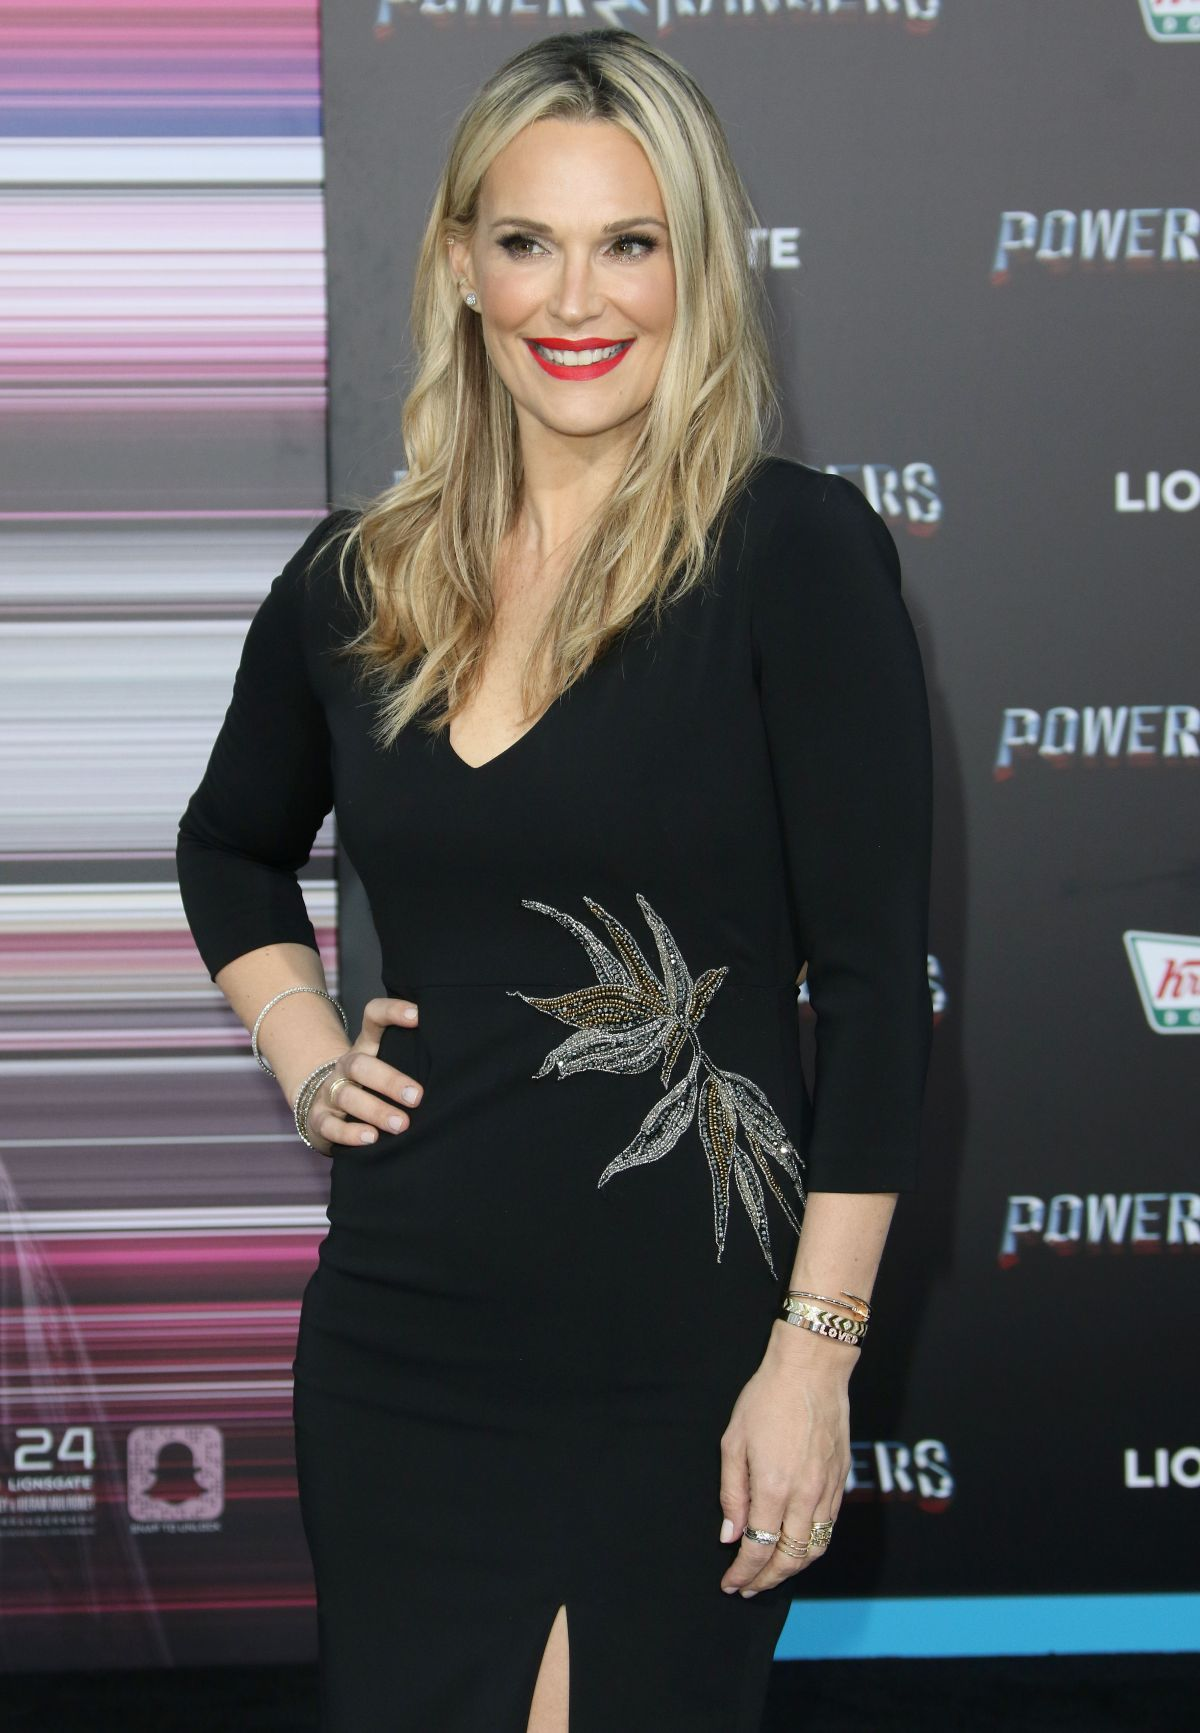 Molly sims archives page 2 of 7 hawtcelebs hawtcelebs molly sims at power rangers premiere download